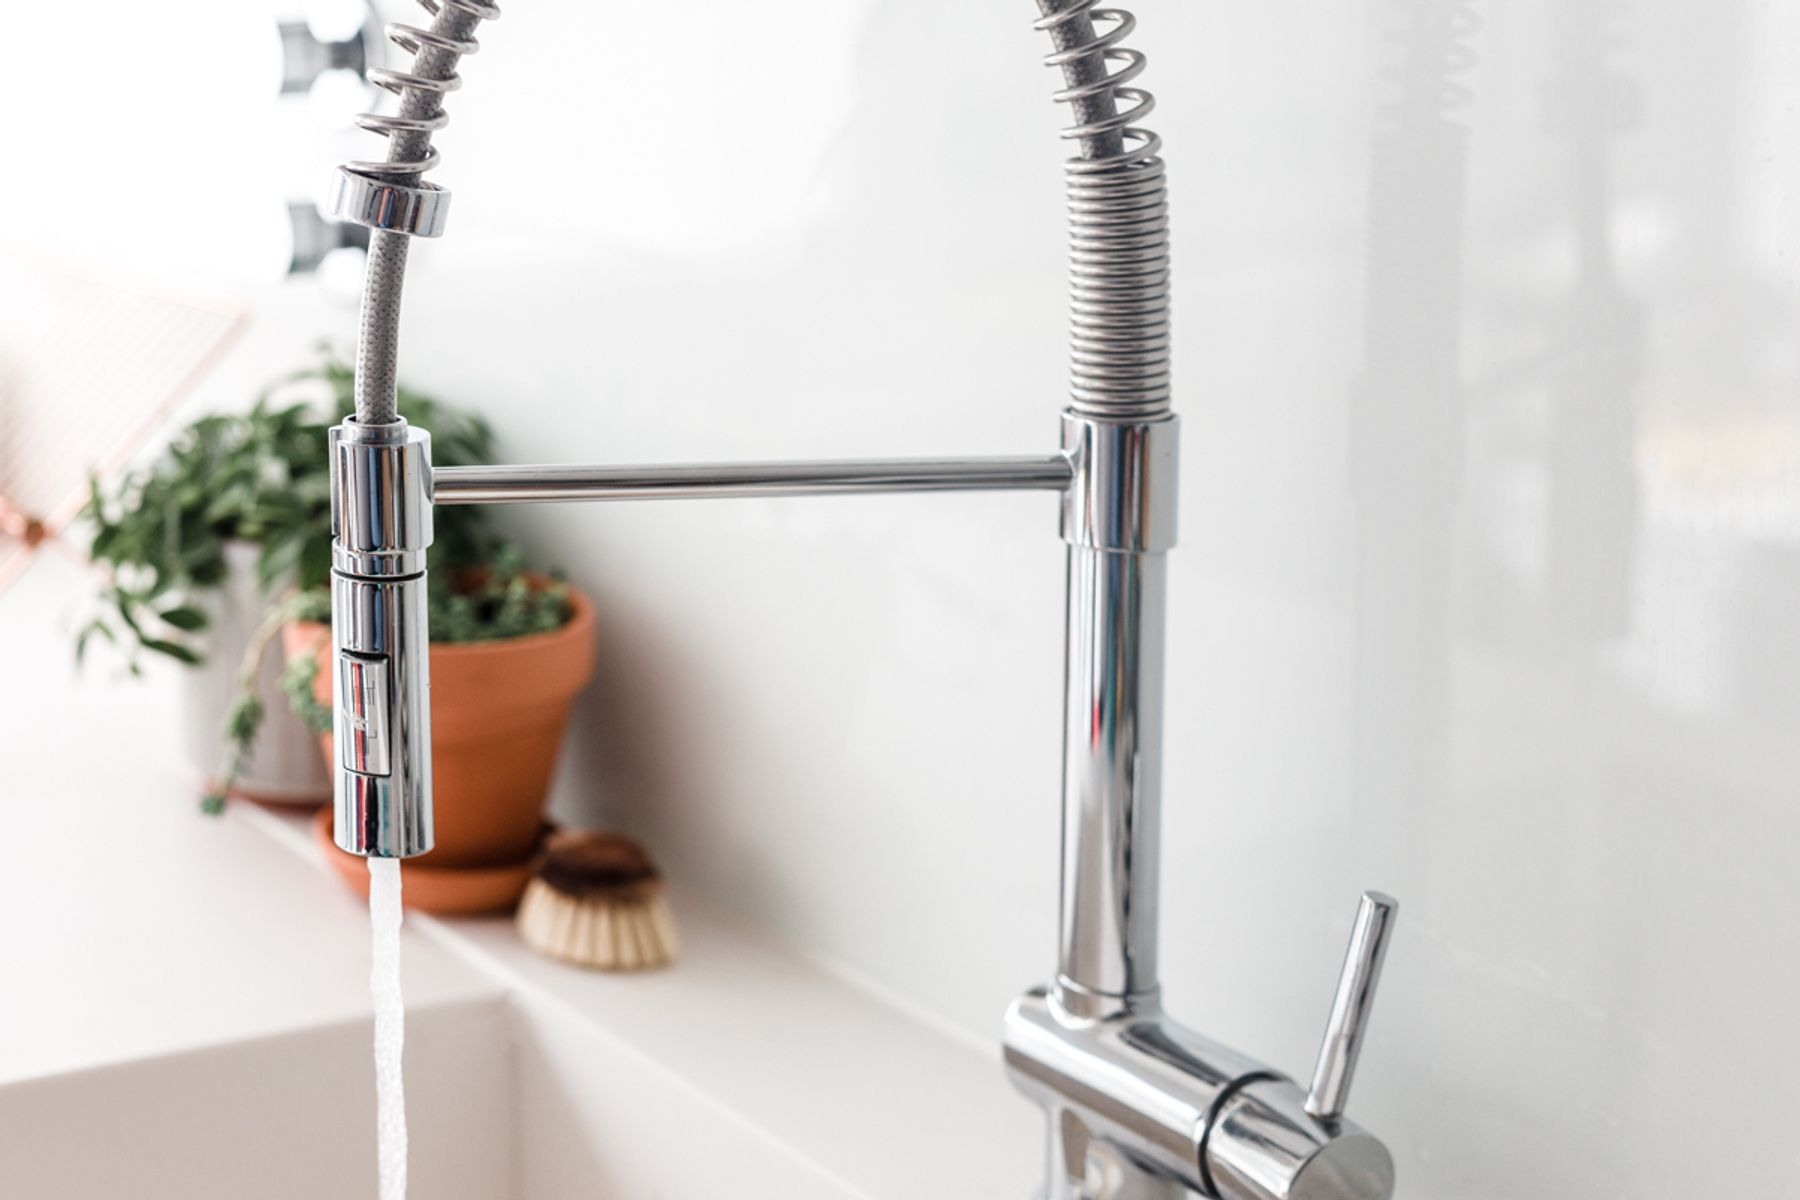 Water flowing out of a chrome kitchen tap.